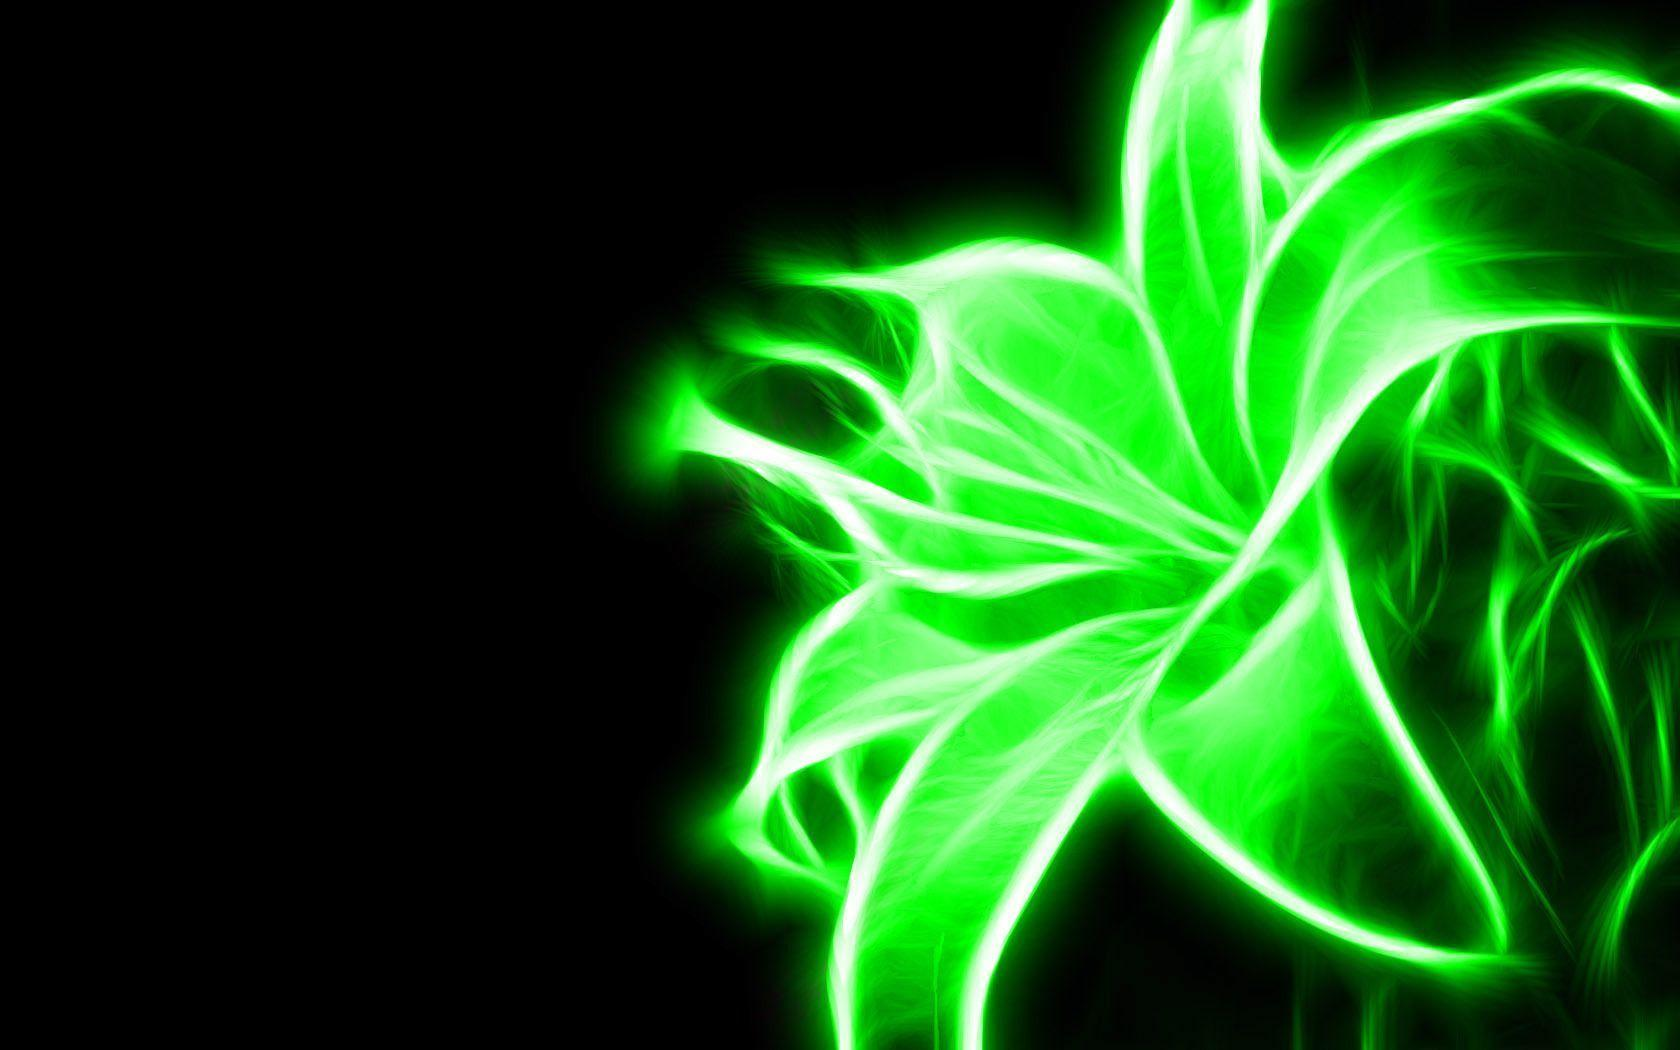 1680x1050 Green Neon Backgrounds